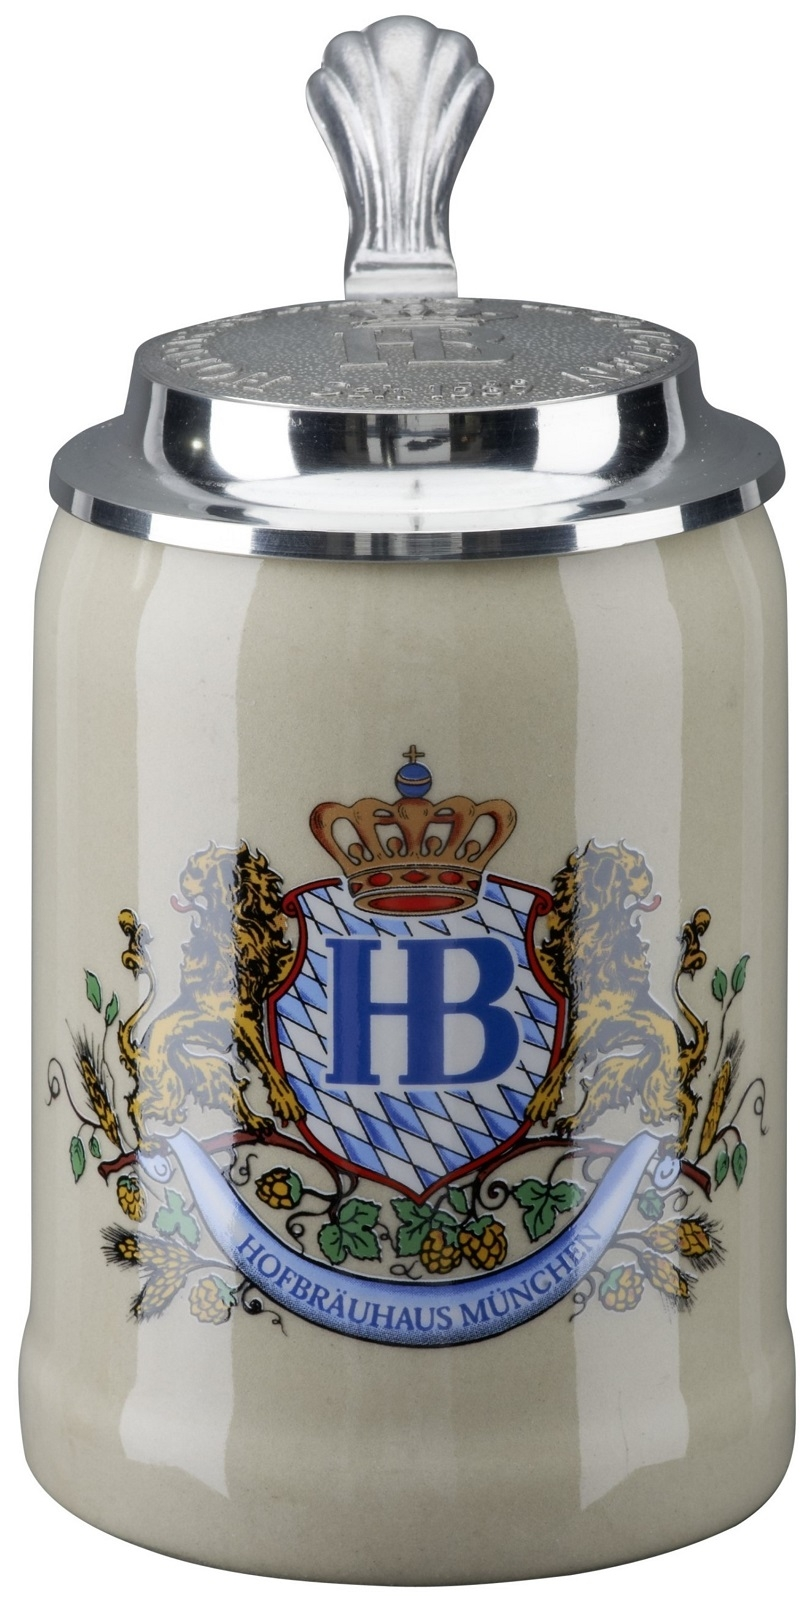 hofbrauhaus munchen munich lion crest stoneware german beer stein 5 l german beer mugs boots. Black Bedroom Furniture Sets. Home Design Ideas